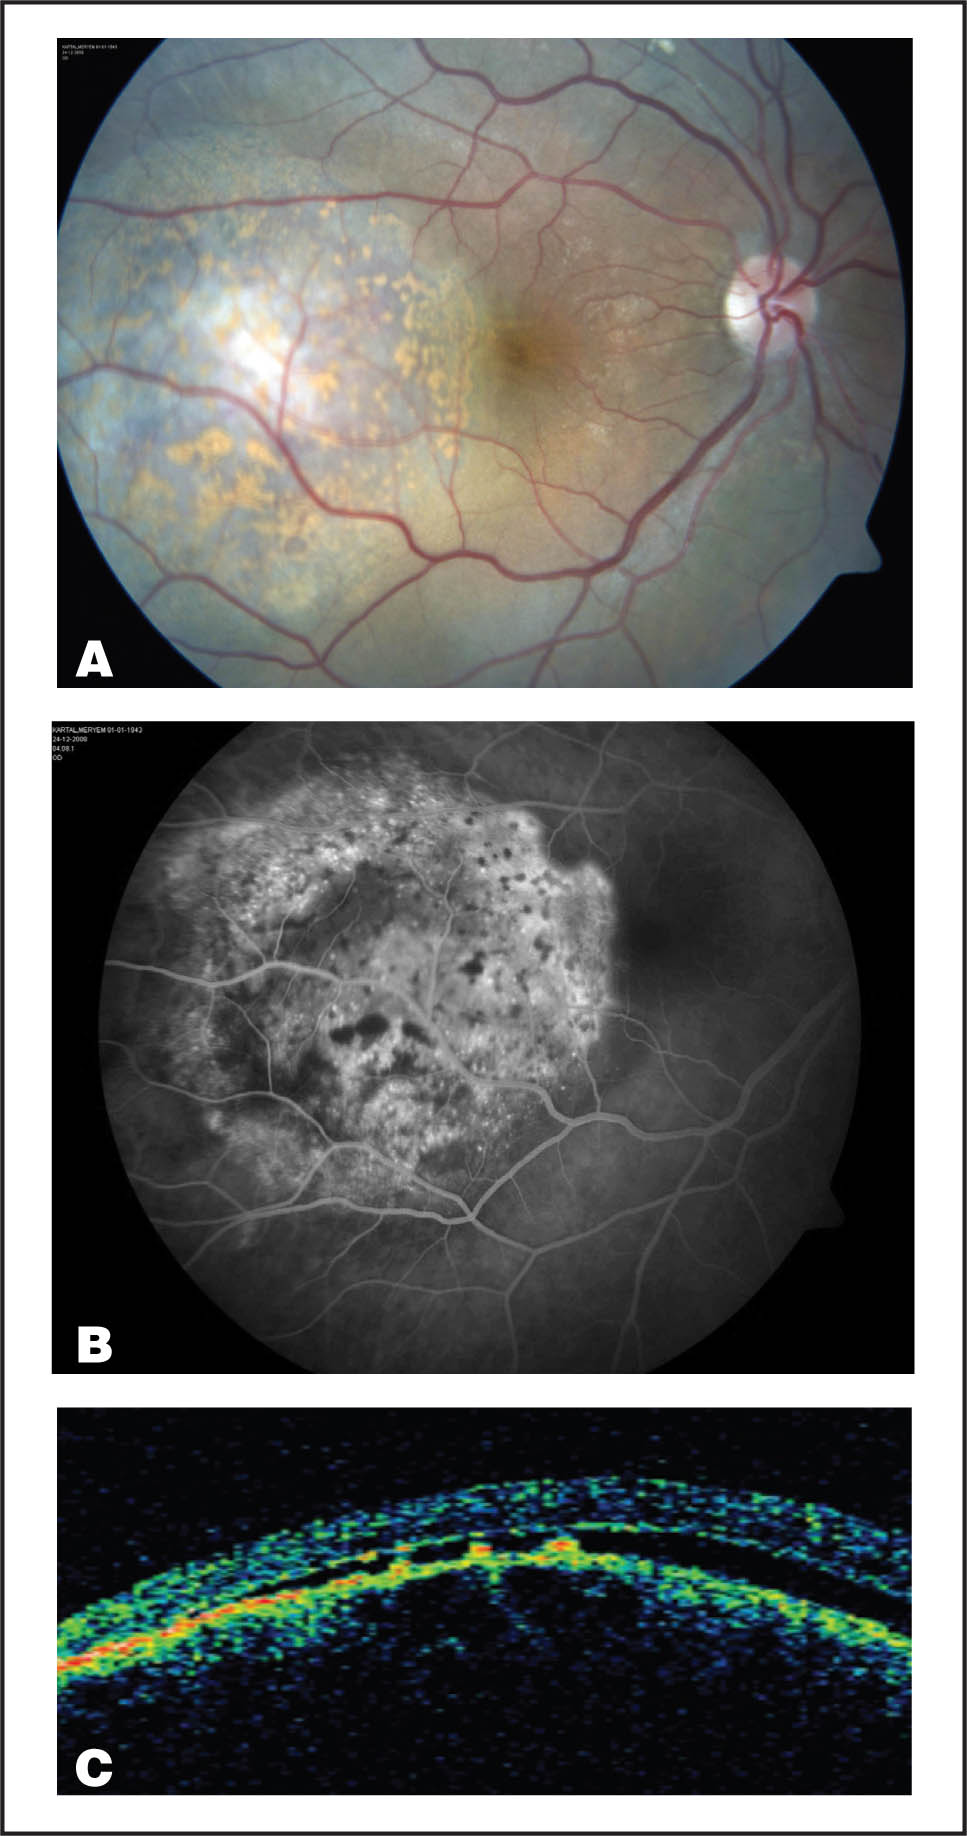 (A) Right Fundus View Showing the Choroidal Melanocytic Lesion with Large Amounts of Orange Pigment. (B) Late Phase Fluorescein Angiography Demonstrates Small, Confluent Areas of Hyperfluorescence Corresponding to Transmission Defects. (C) Optical Coherence Tomography Reveals Local Retinal Pigment Epithelial Loss over the Melanocytic Lesion and Collections of Material with Subretinal Fluid.